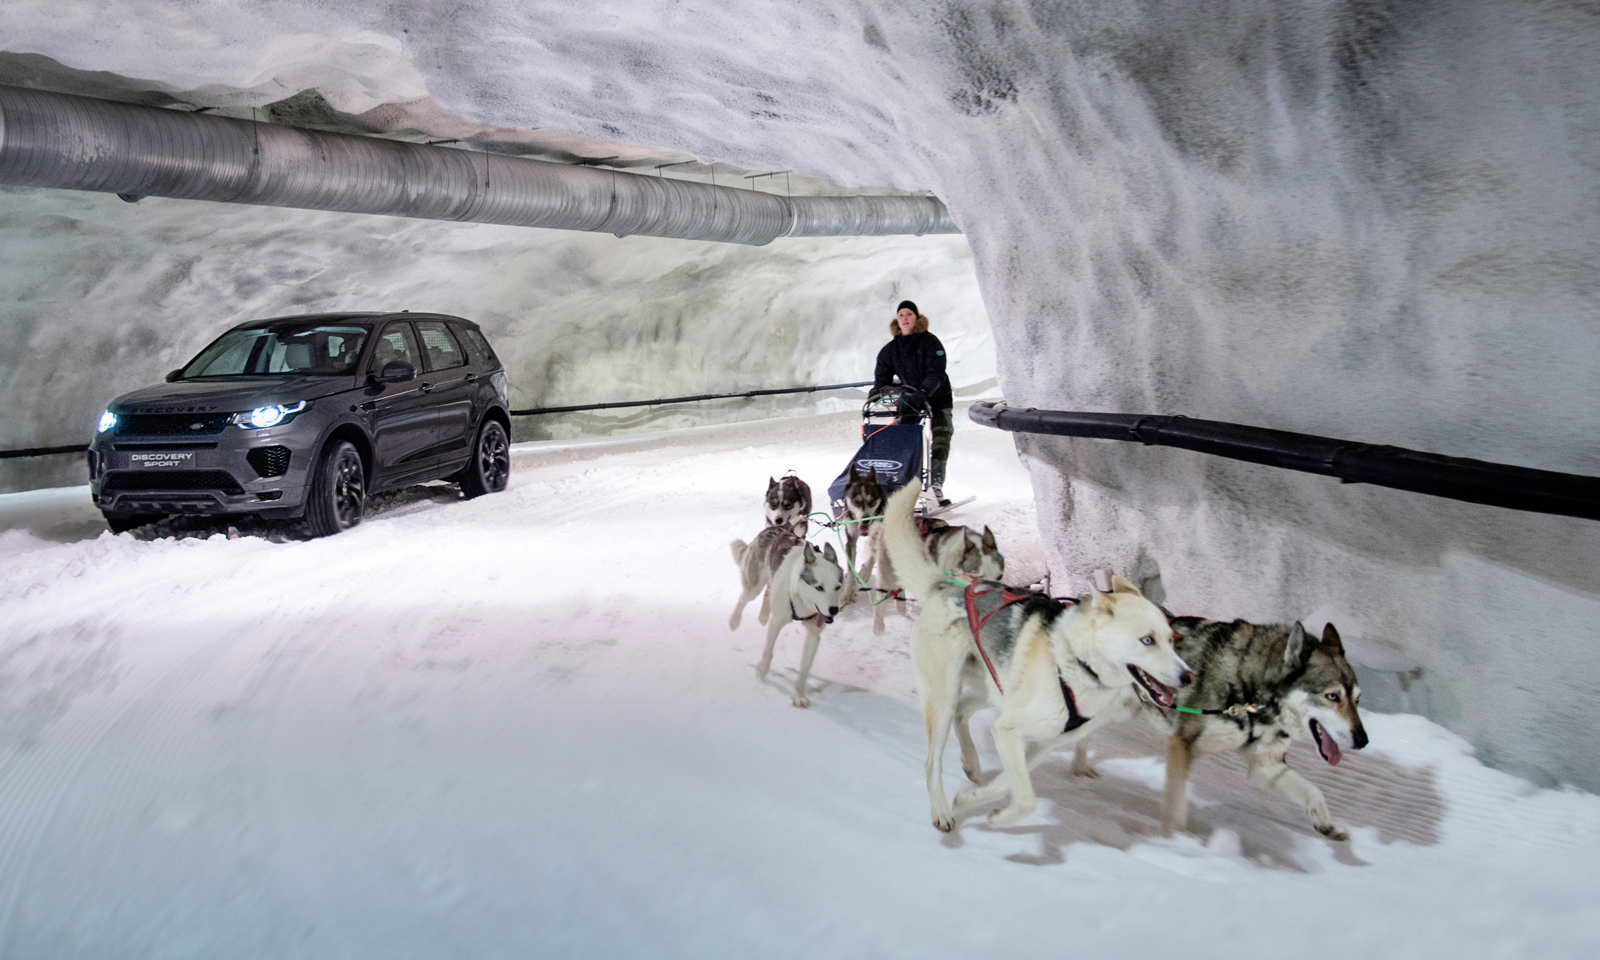 •Discovery Sport takes on dog sled team in unique race at Vesileppis Ski Tunnel in Finland